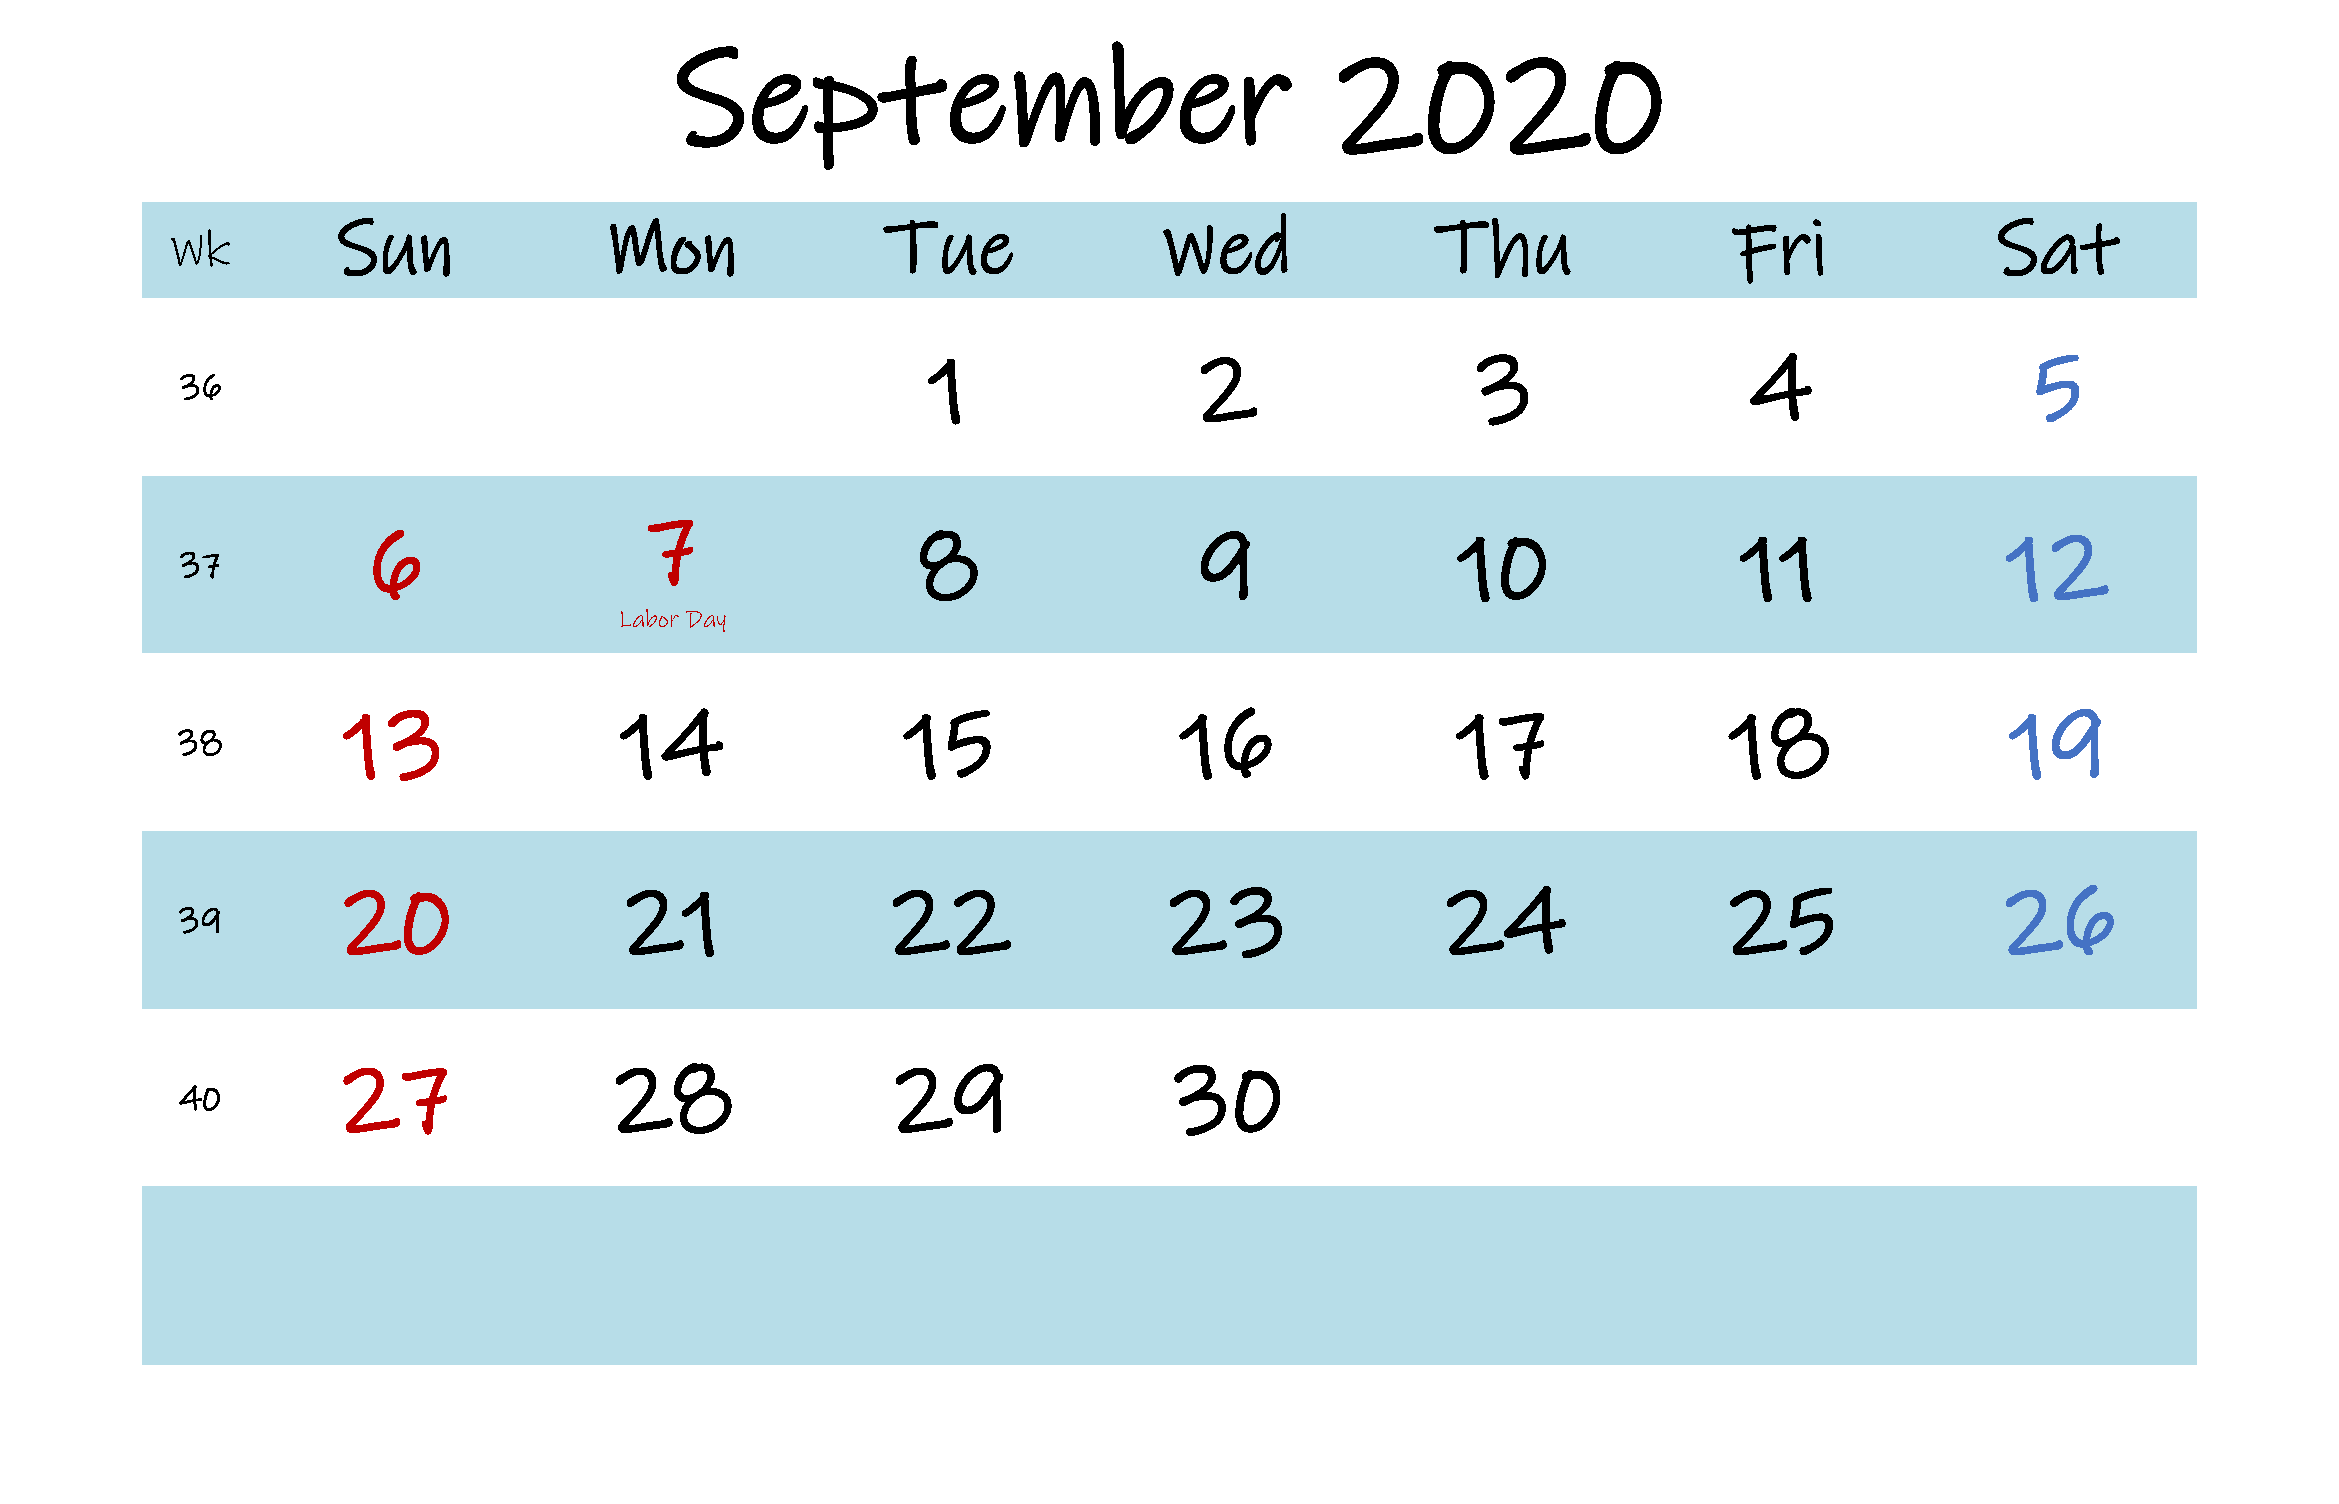 Print Sep 2020 Holidays Calendar Template